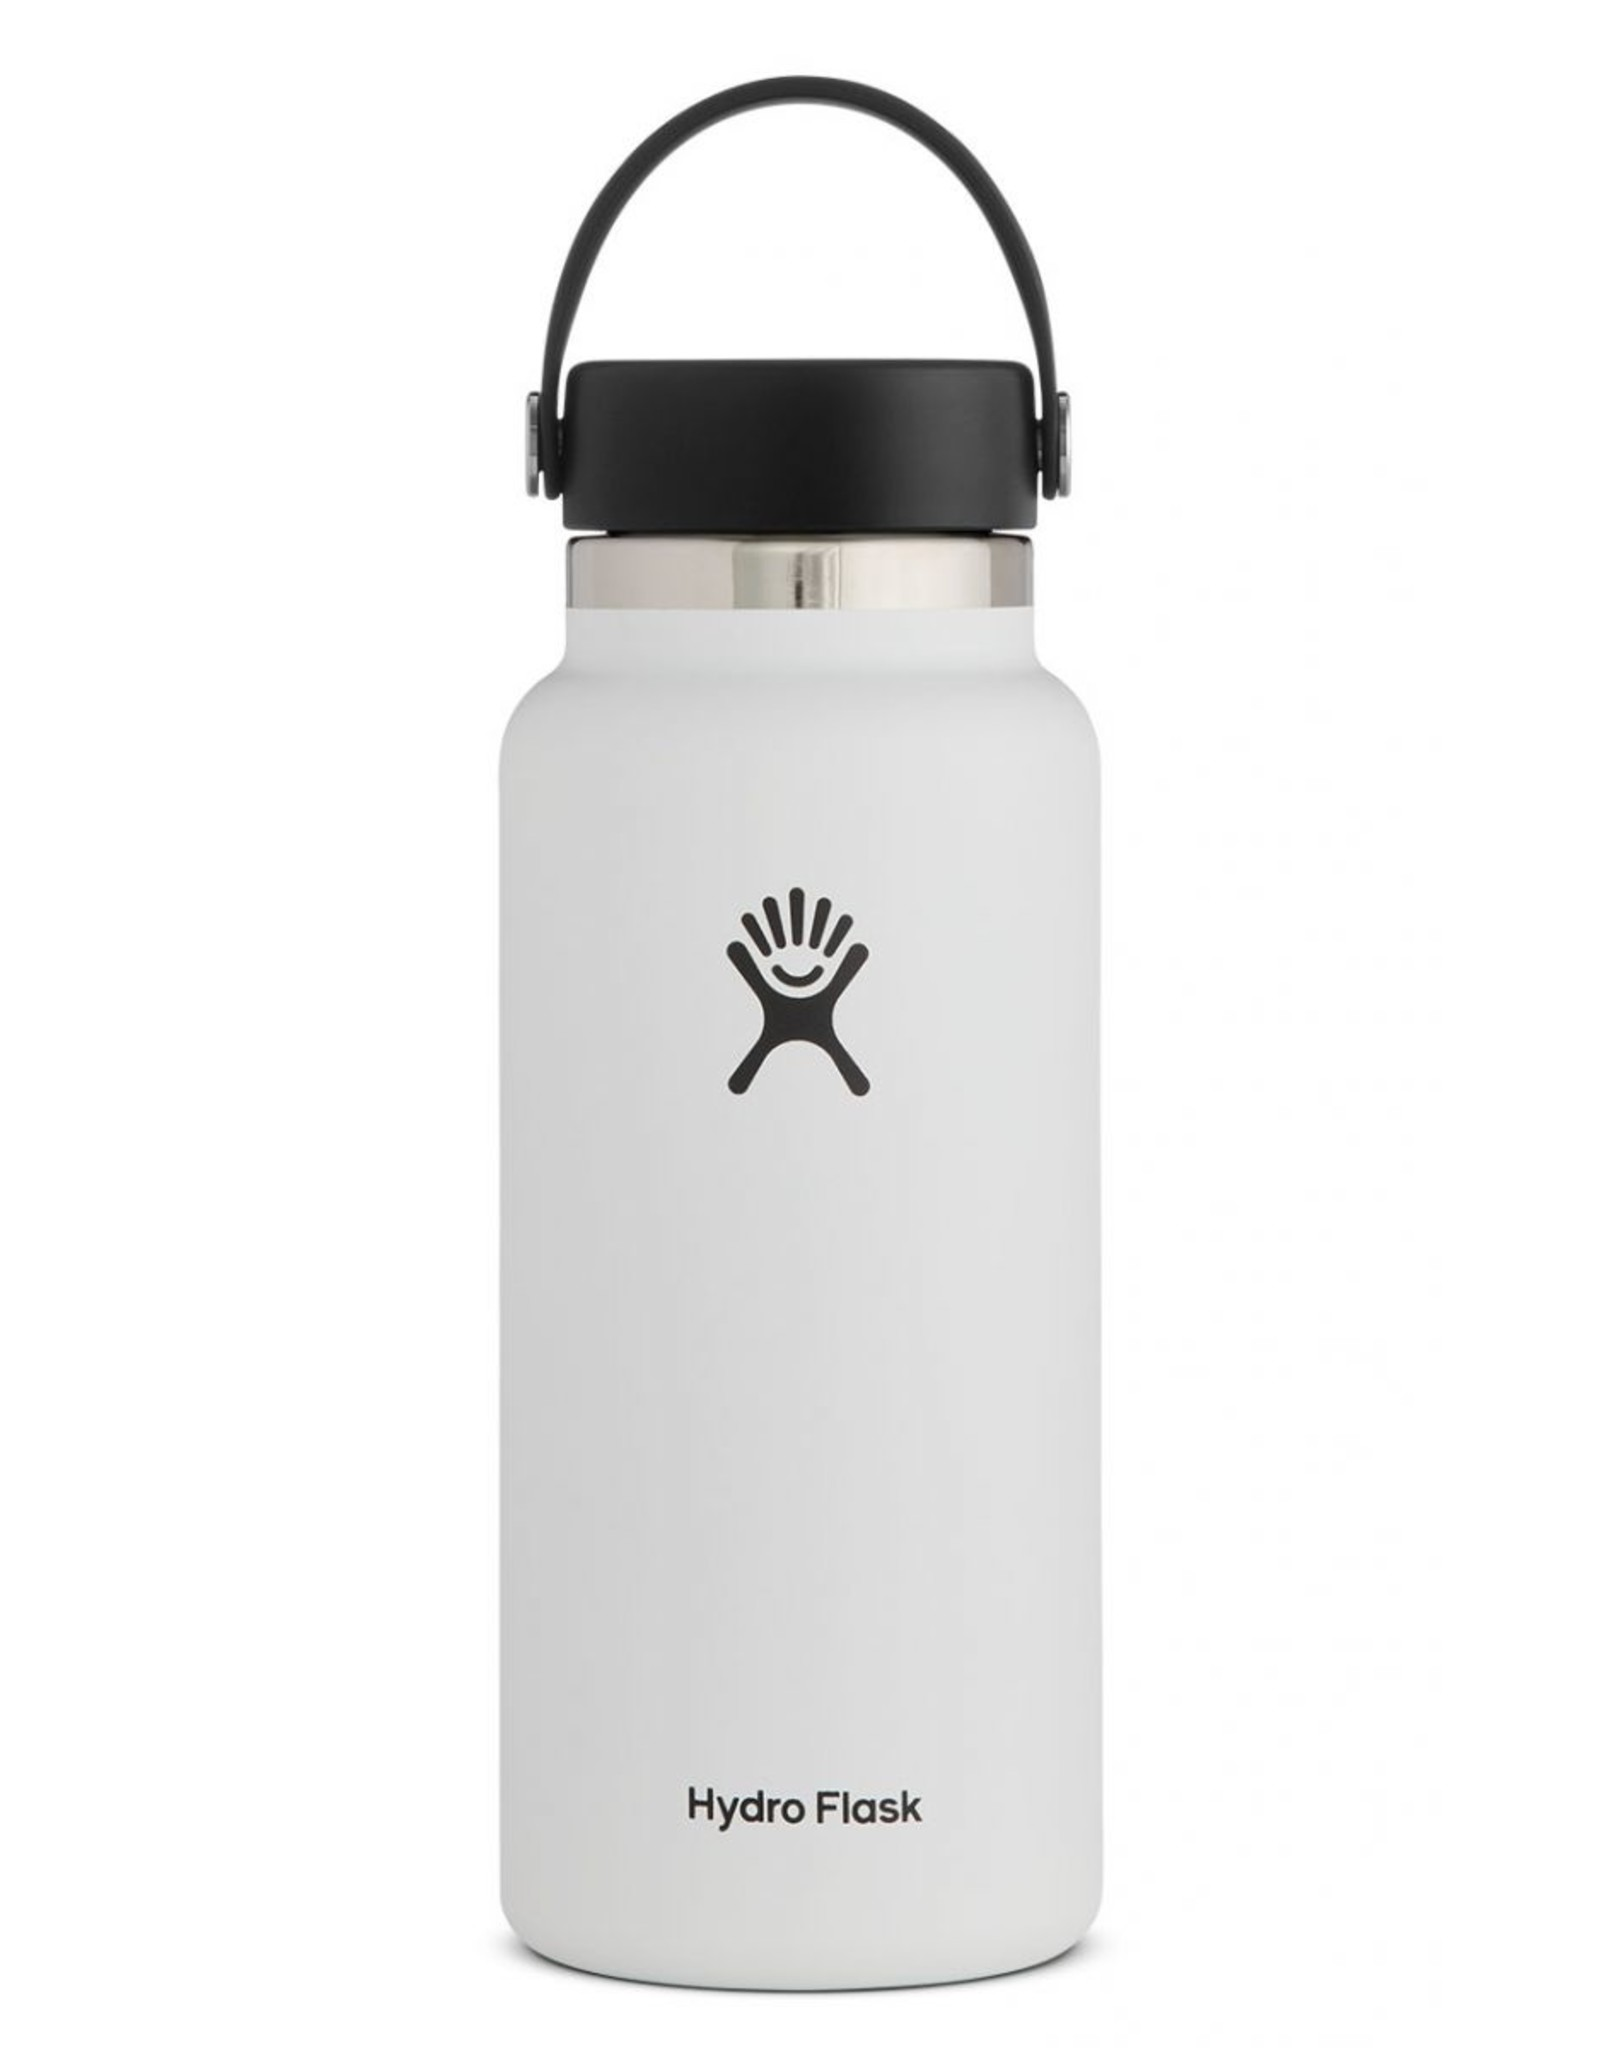 HYDRO FLASK HYDRO FLASK 32OZ WIDE MOUTH BOTTLE-WHITE